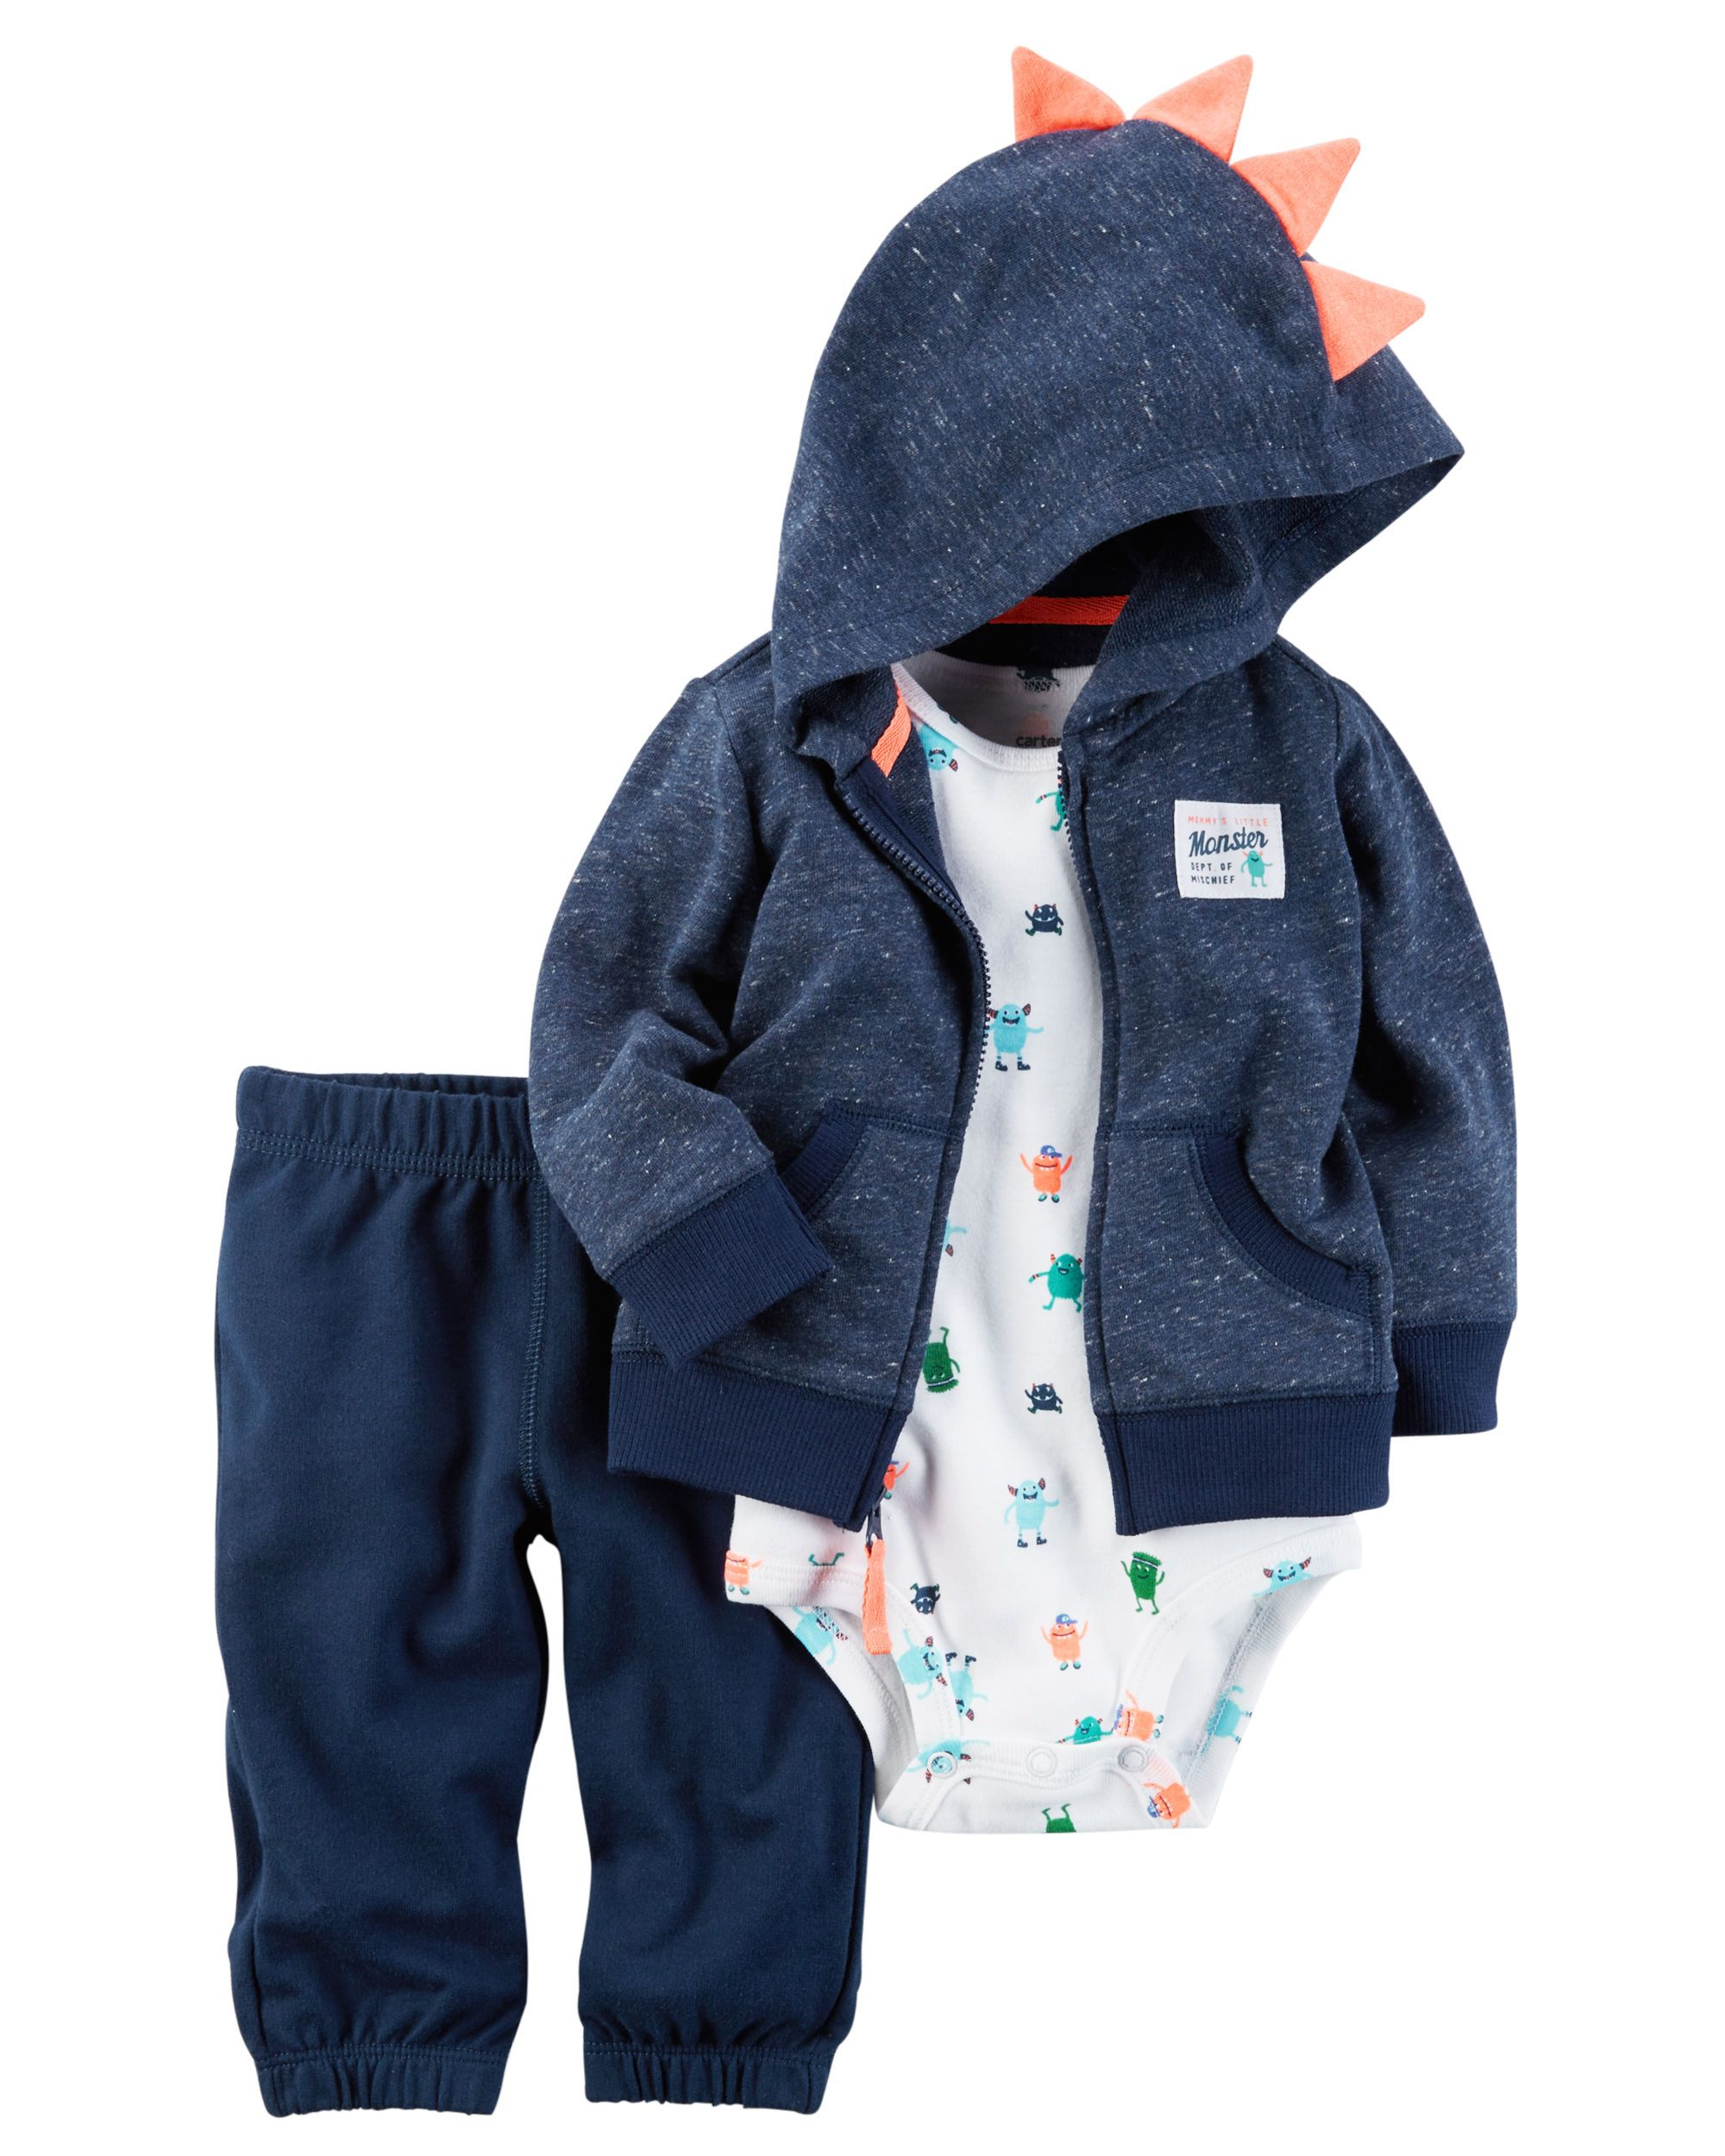 ea68c155f Featuring a zip-up French terry jacket and pants, this 3-piece set is  complete with a coordinating cotton bodysuit.